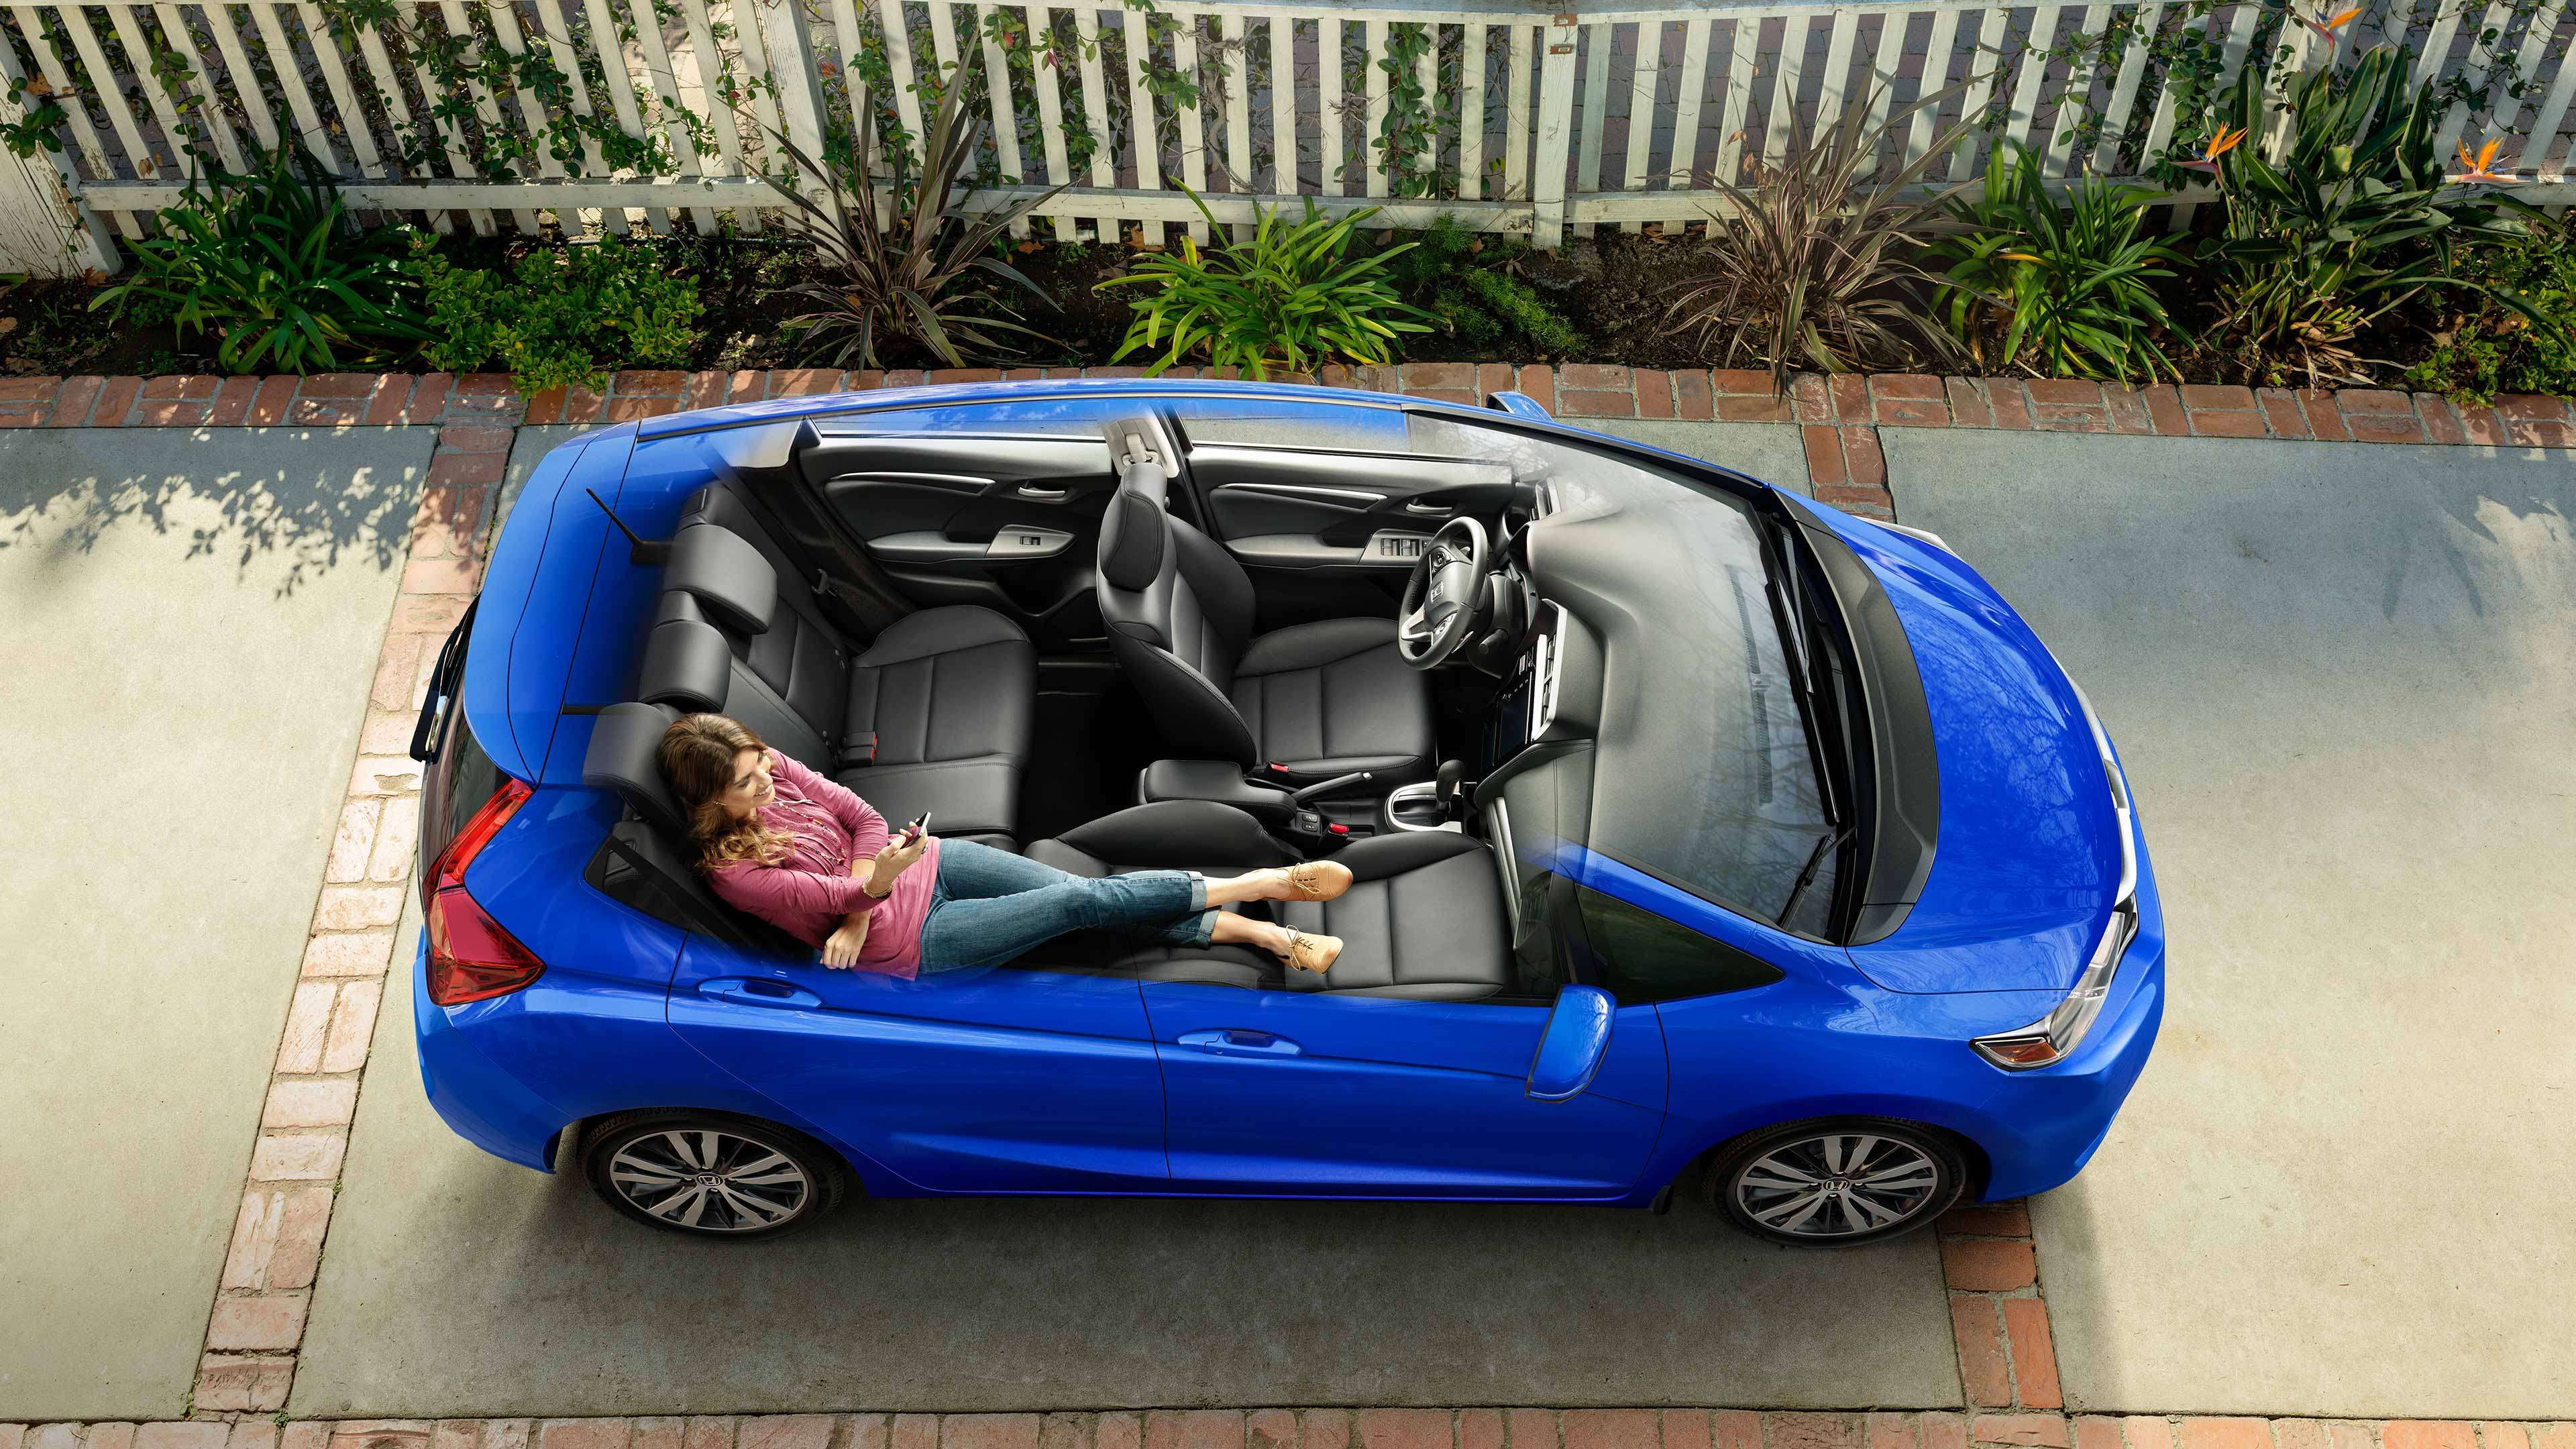 Overhead view of the Fit with an open view to see the interior with a woman sitting in the back with her feet on the front passenger seat and on her phone